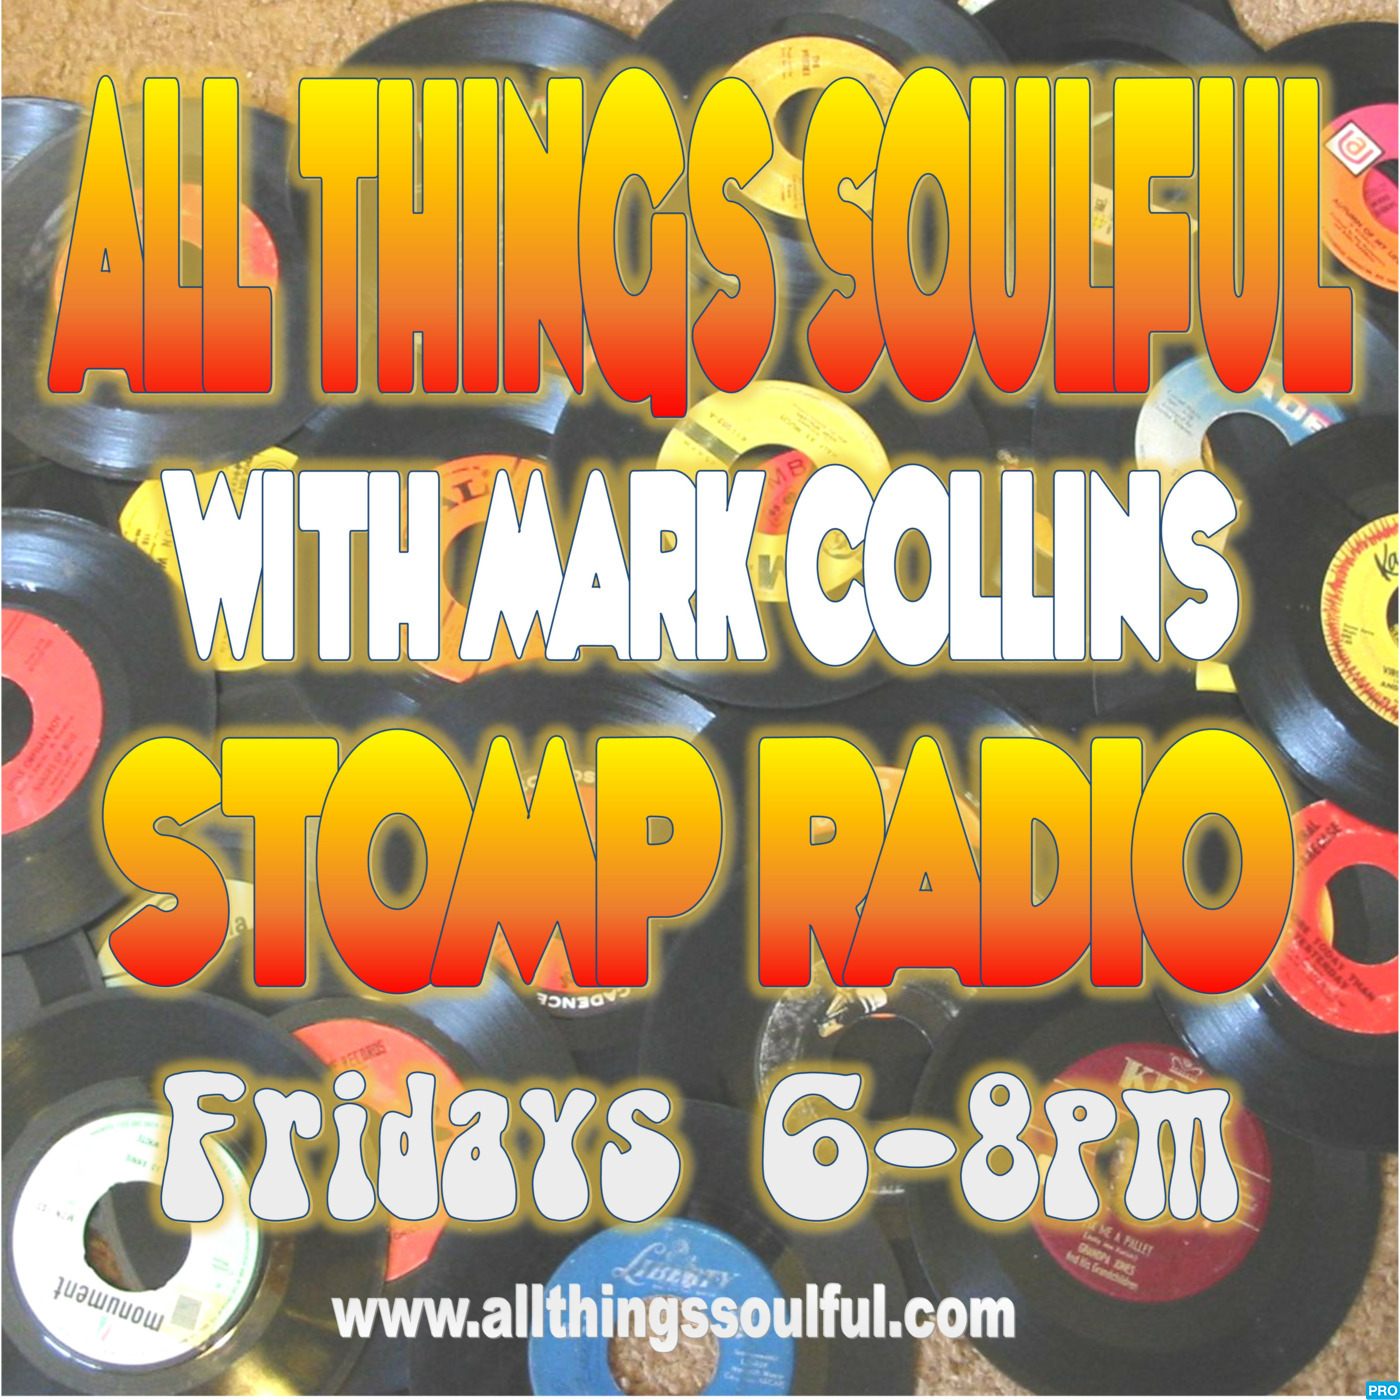 Mark Collins - All Things Soulful